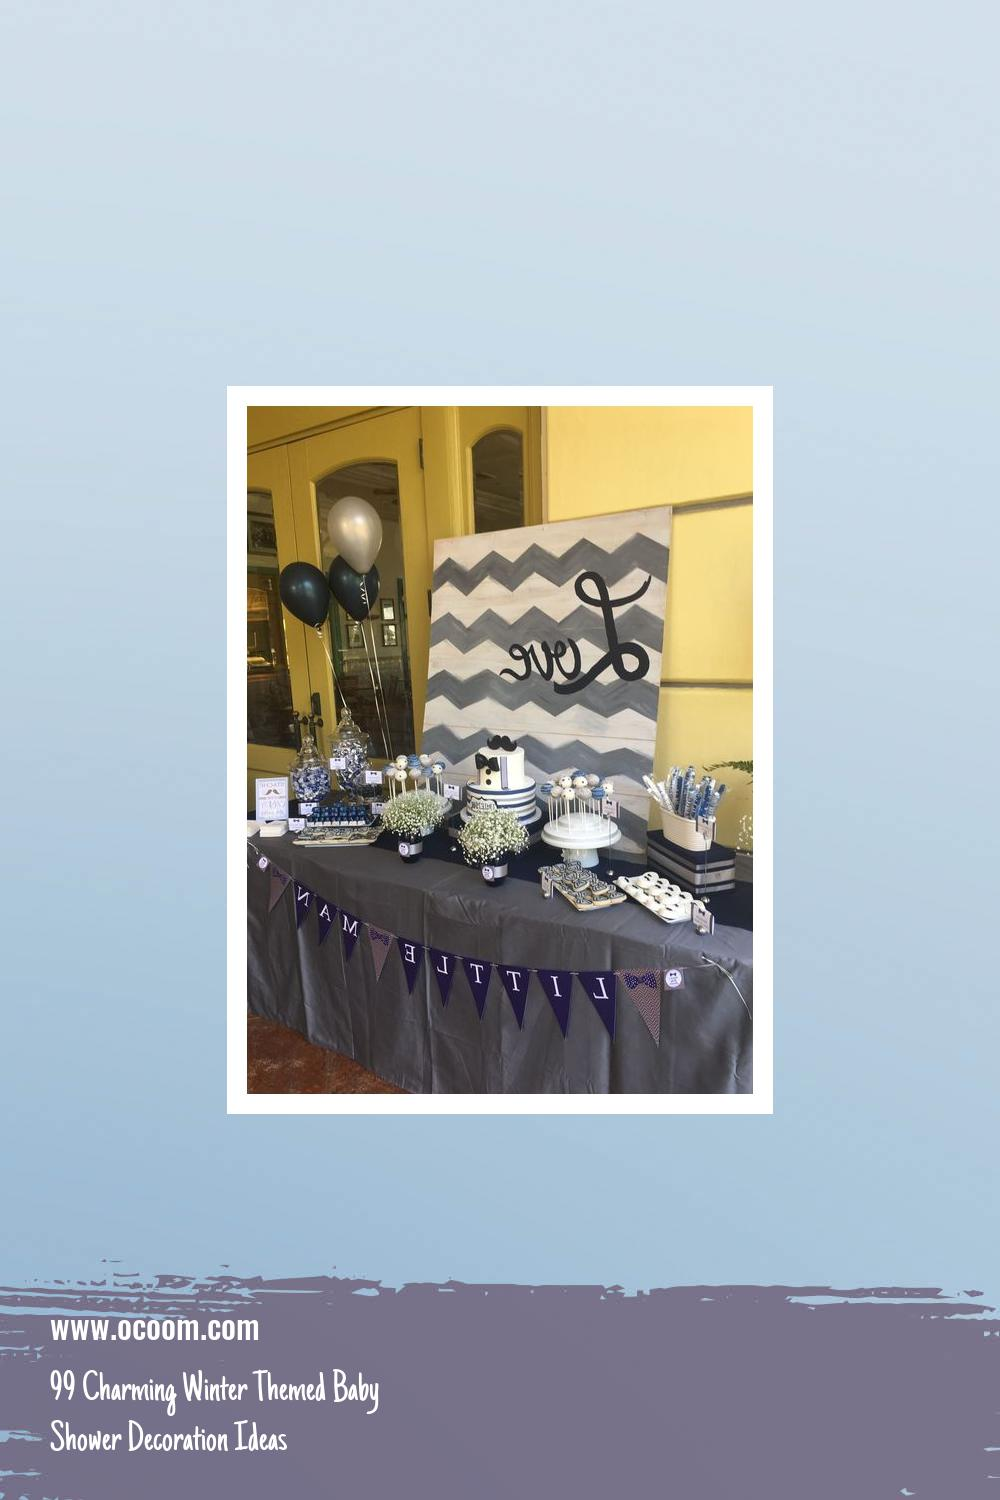 99 Charming Winter Themed Baby Shower Decoration Ideas 4